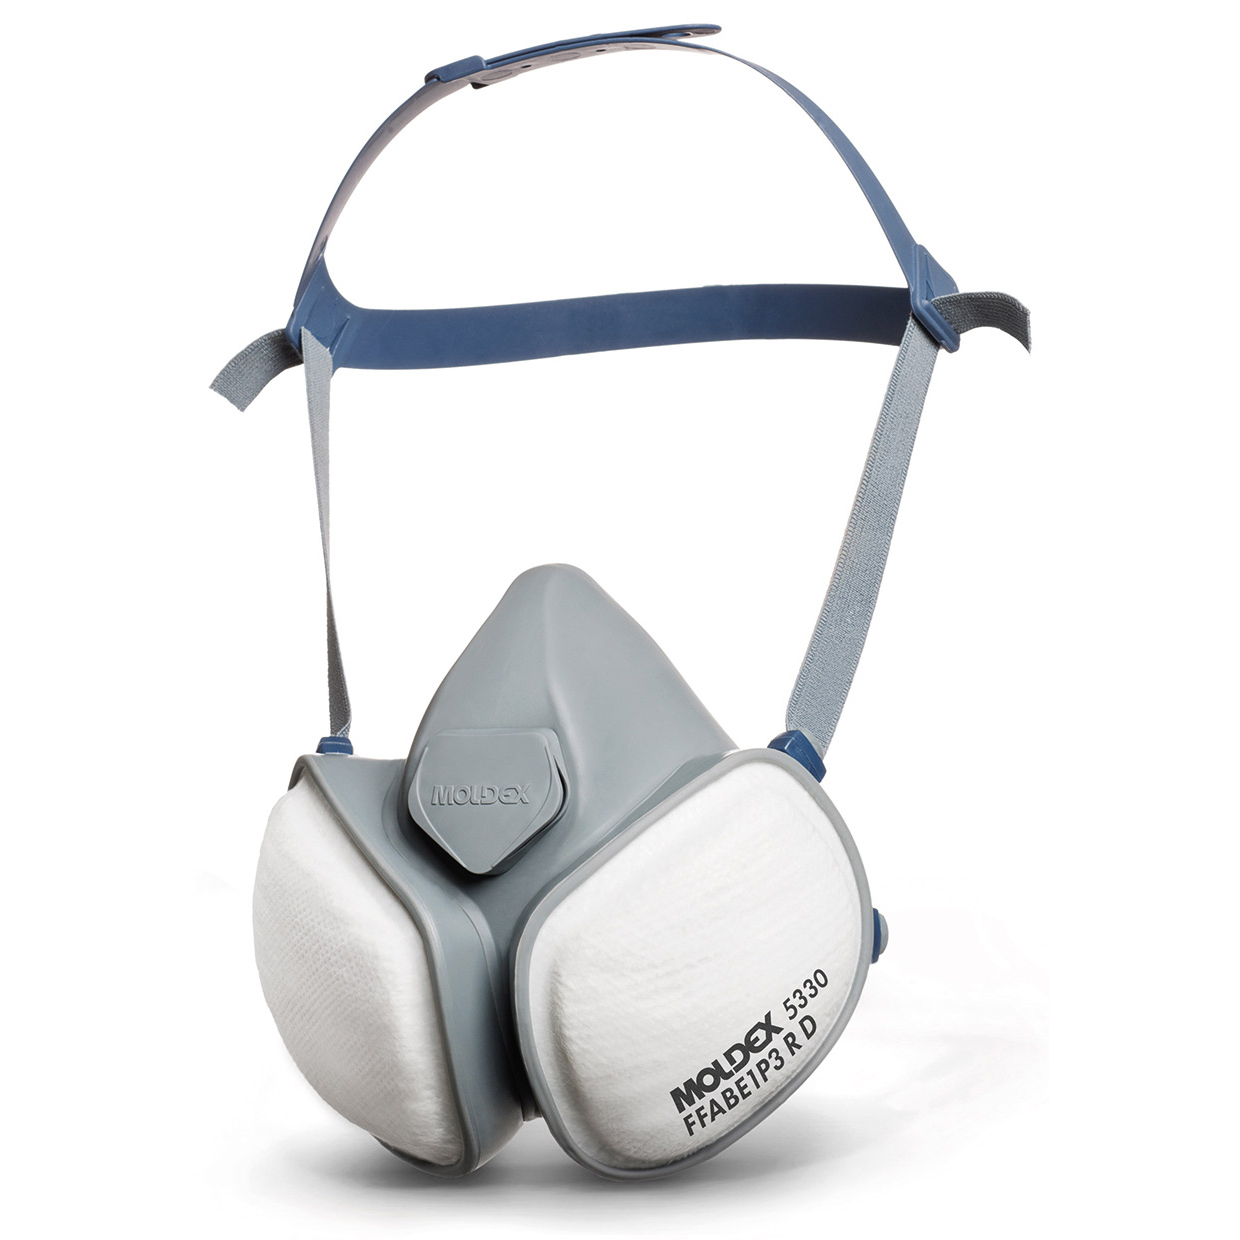 Moldex ABE1P3R Half Mask with Pleated Filter Technology Grey Ref M5330 Up to 3 Day Leadtime